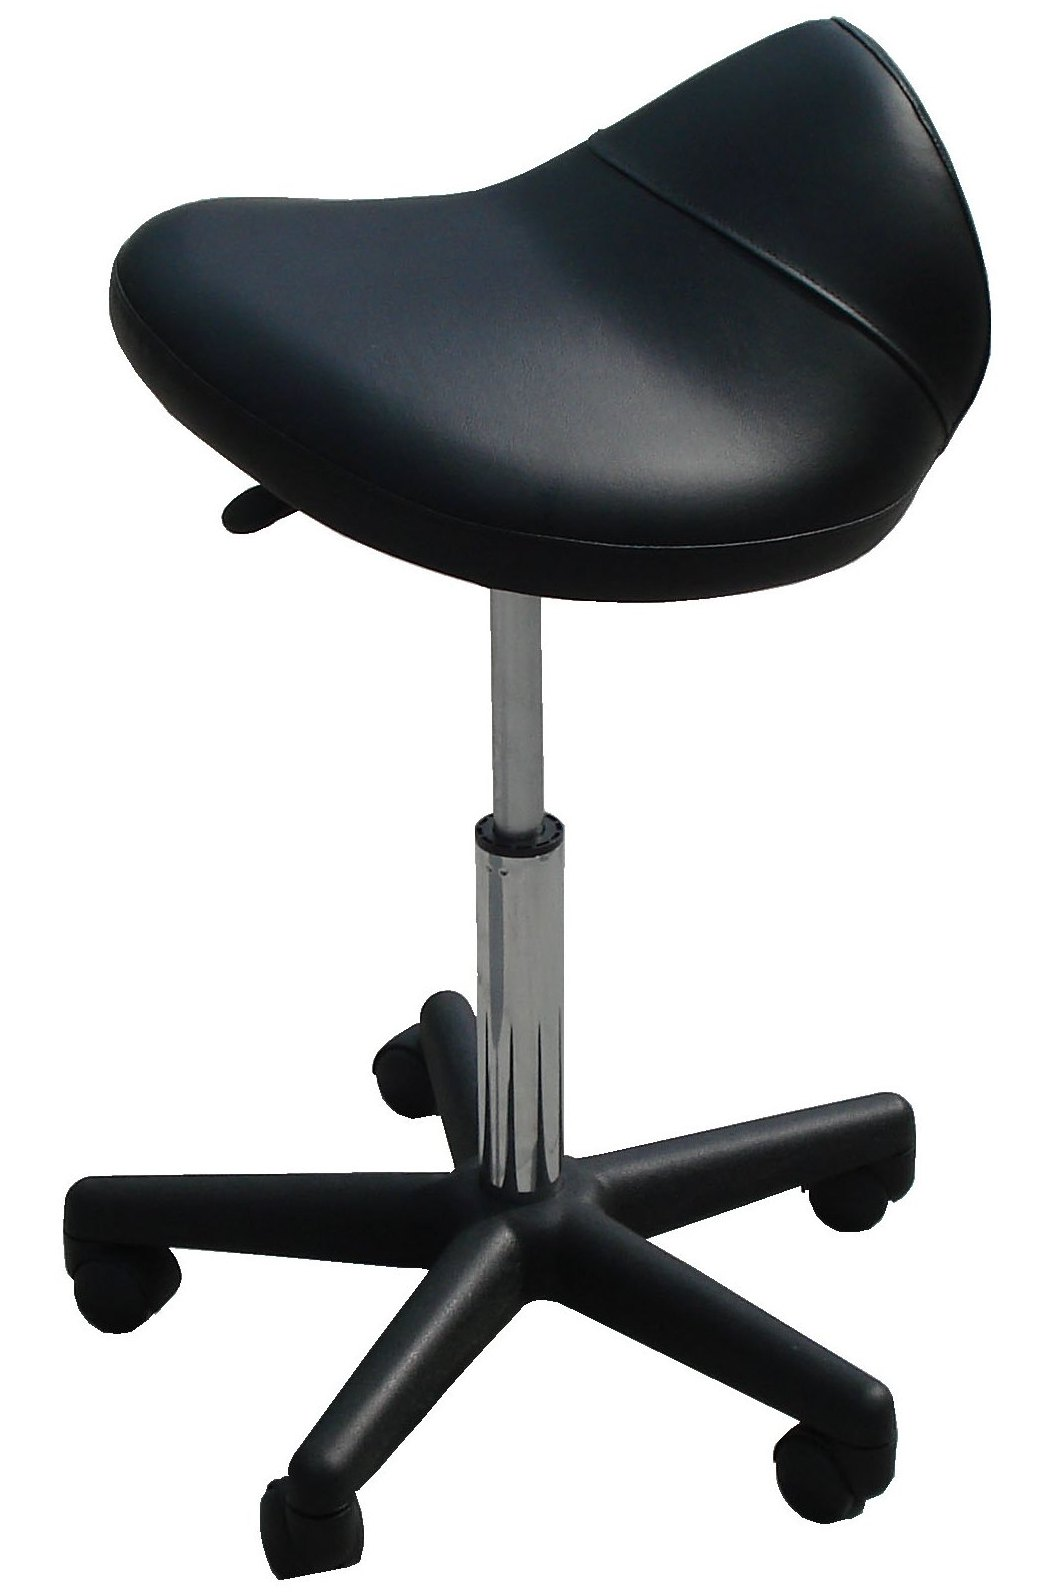 Saddle Chair Saddle Chairs Ergonomic Chairs